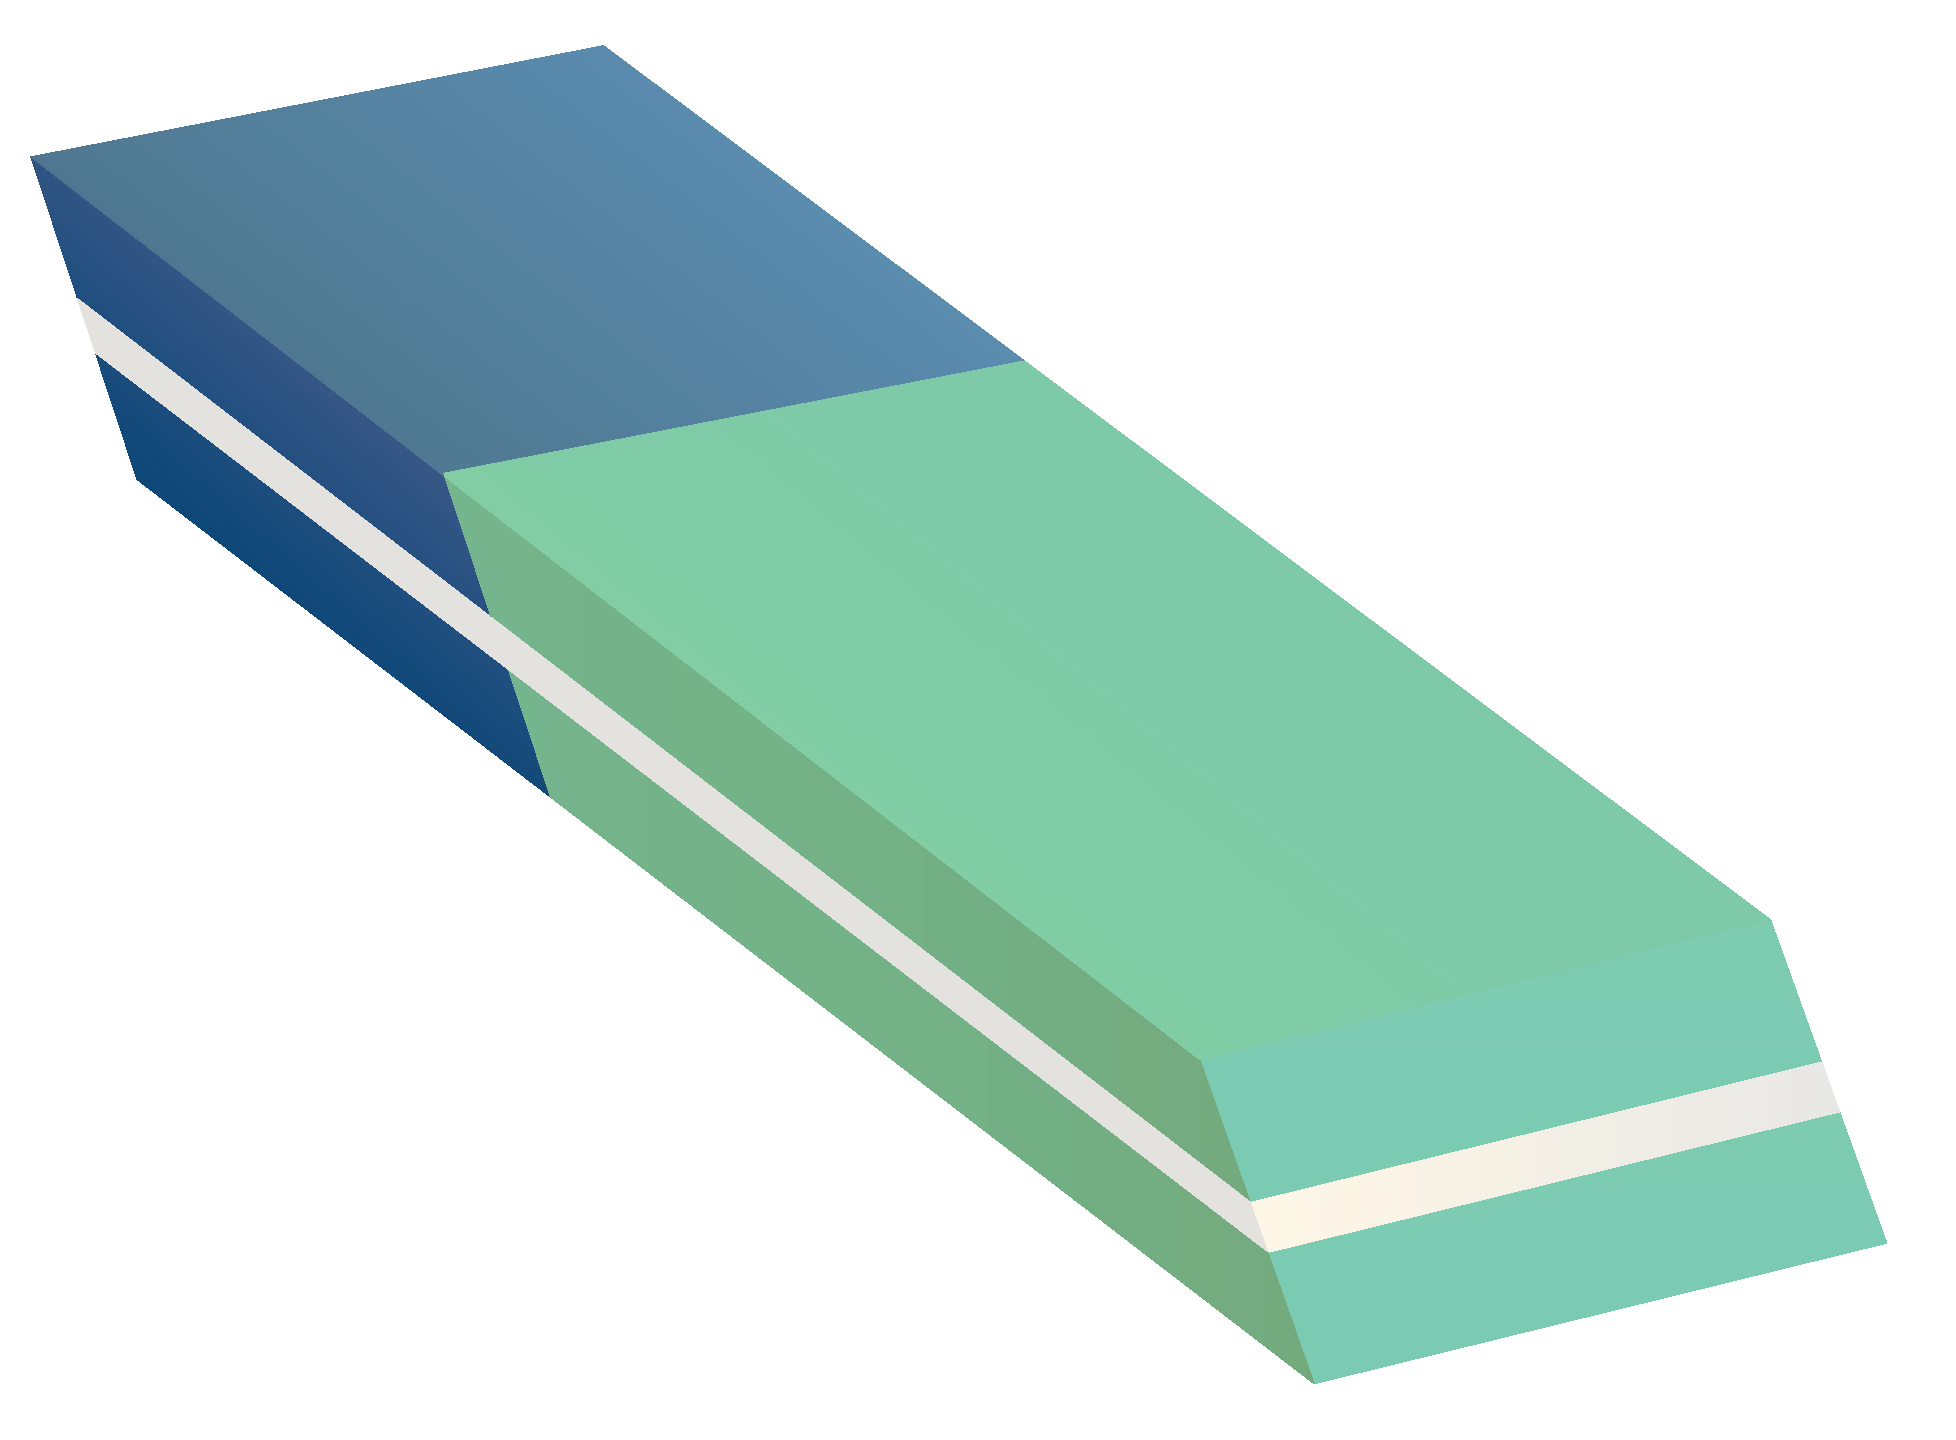 Coffin clipart transparent background. Eraser png picture gallery